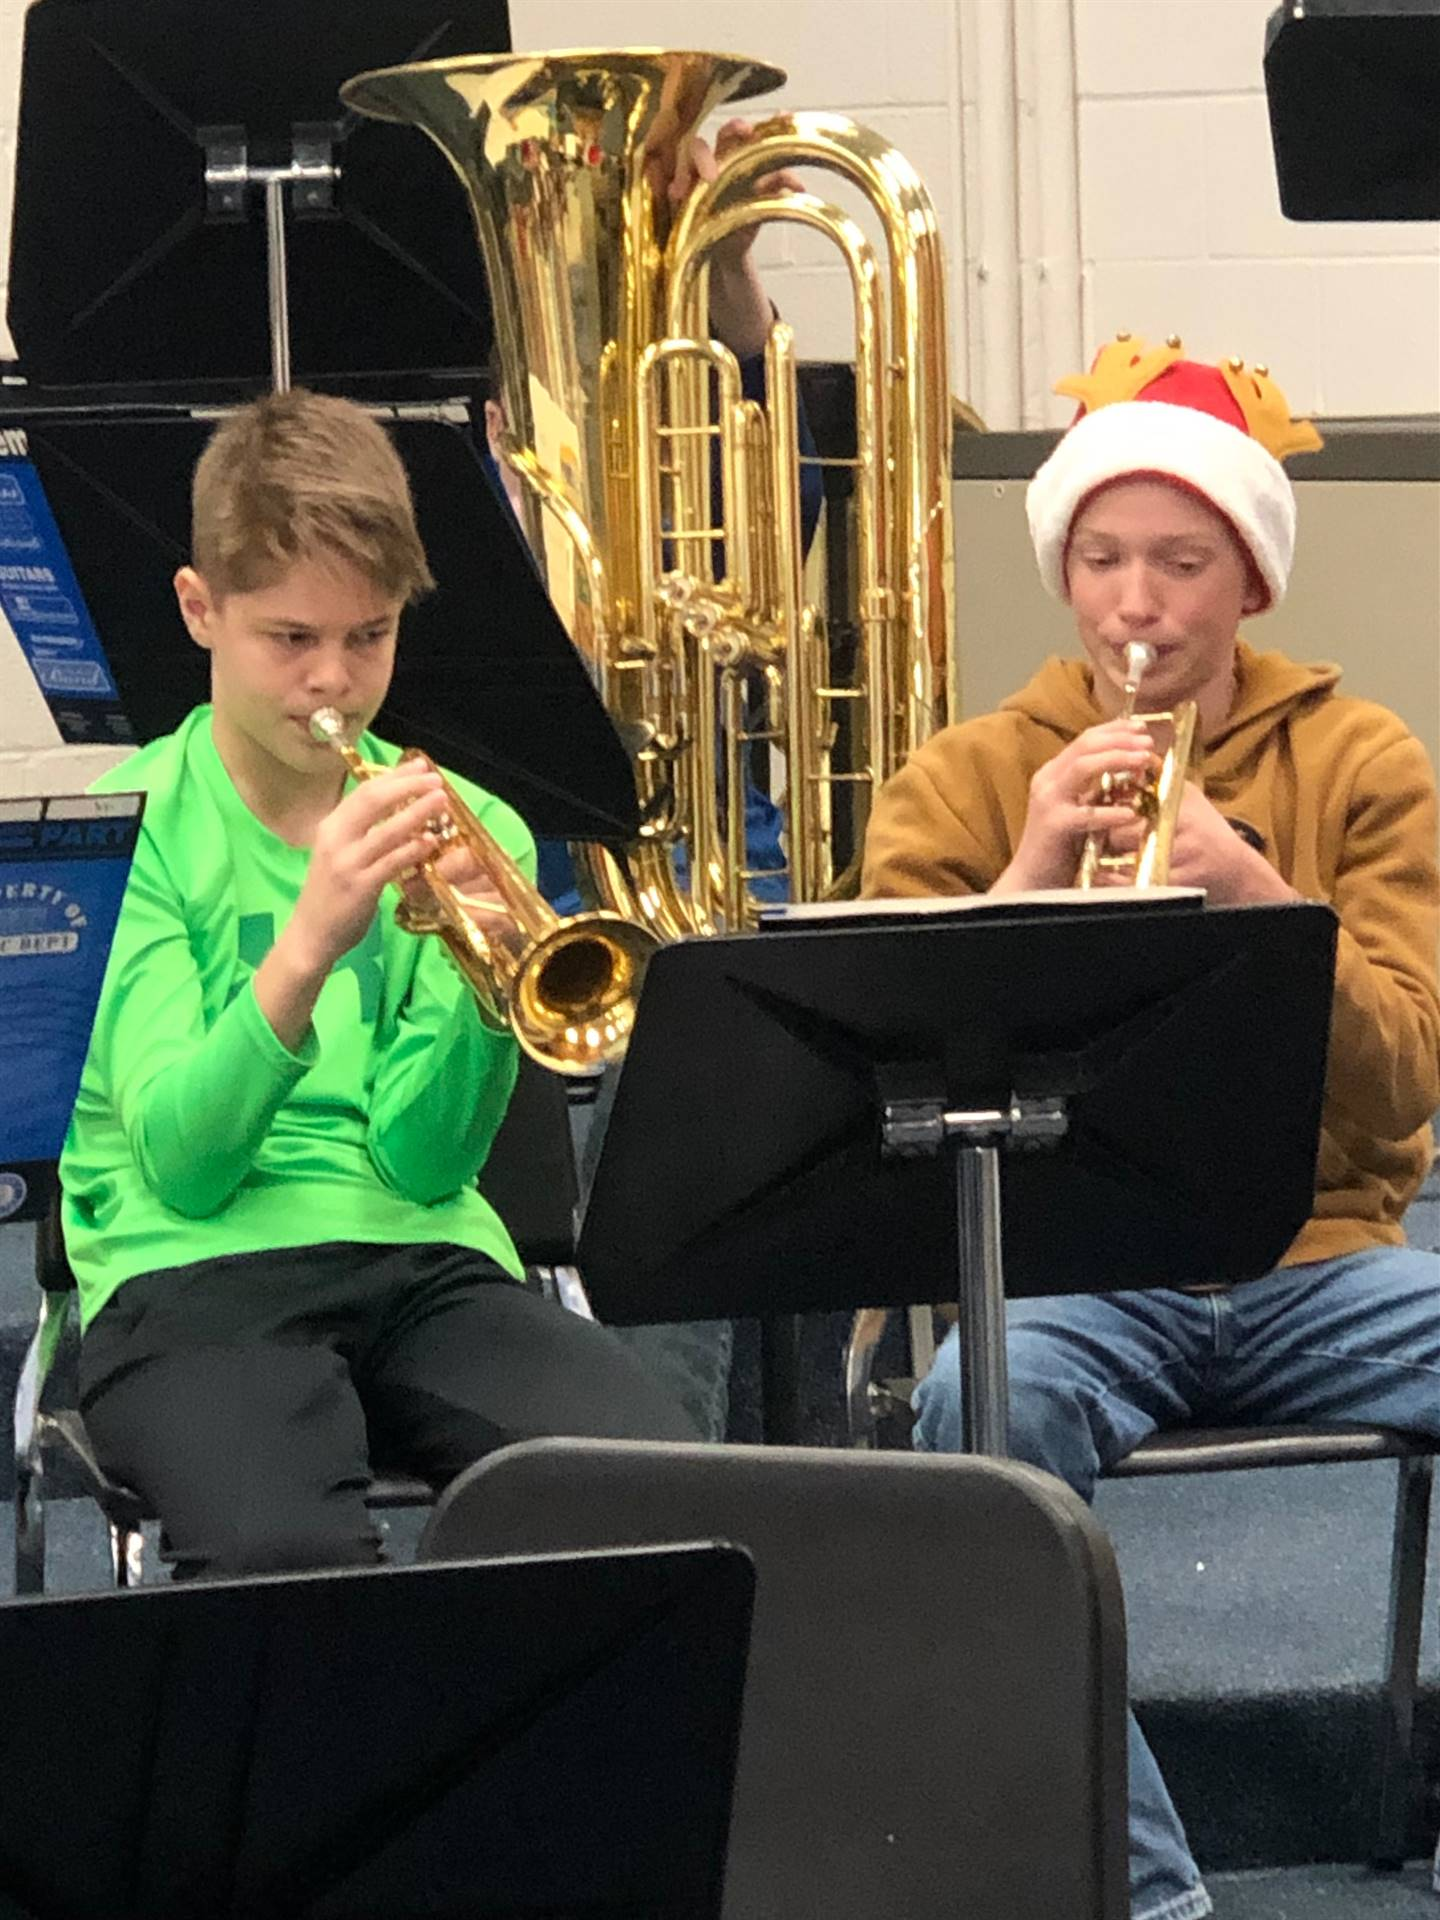 Two boys playing during band class